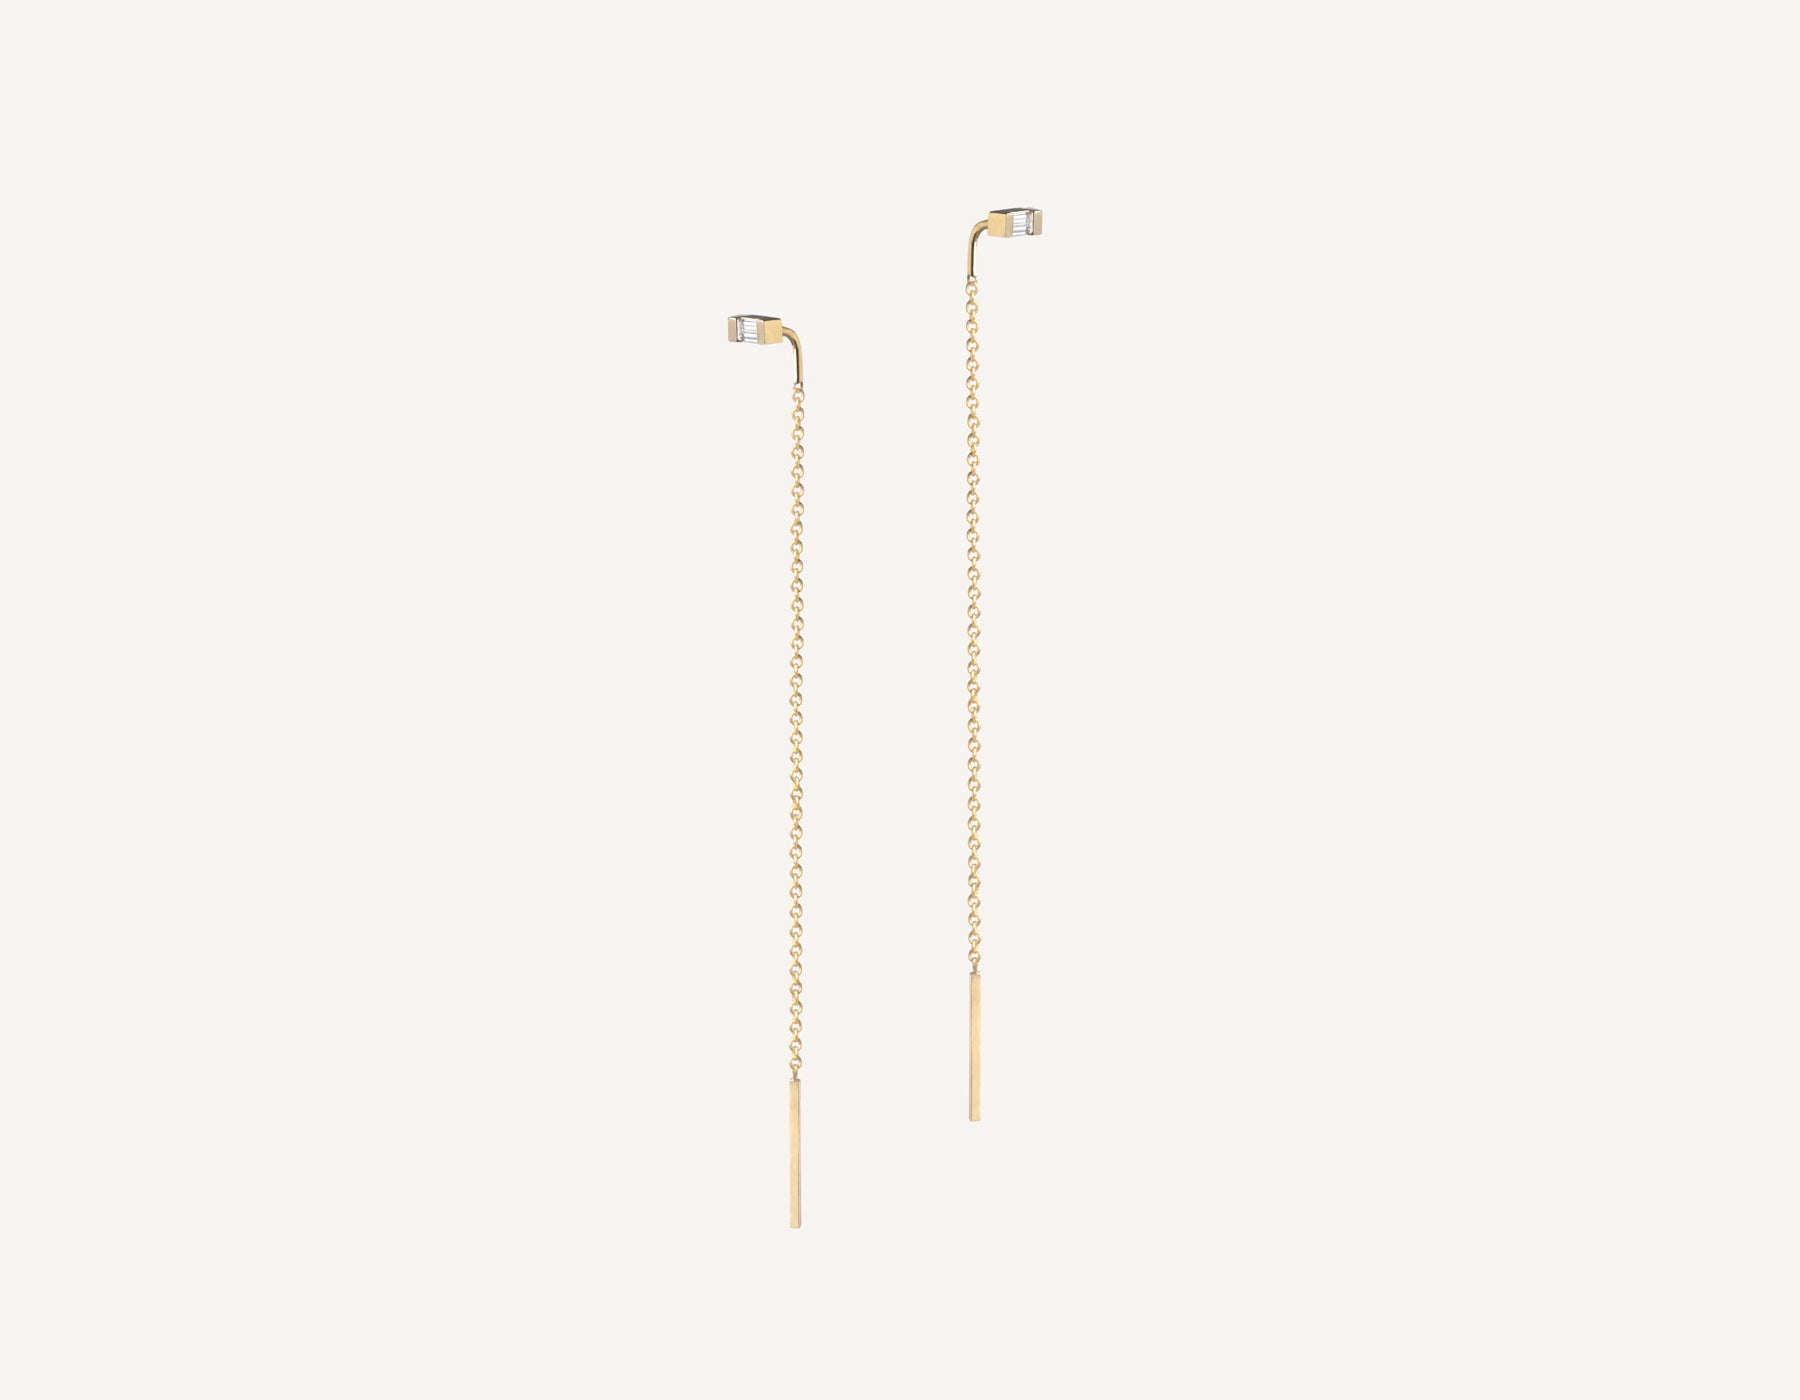 Vrai & oro simple petite 14k solid gold Baguette Diamond Line threader delicate chain earrings, 14K Yellow Gold